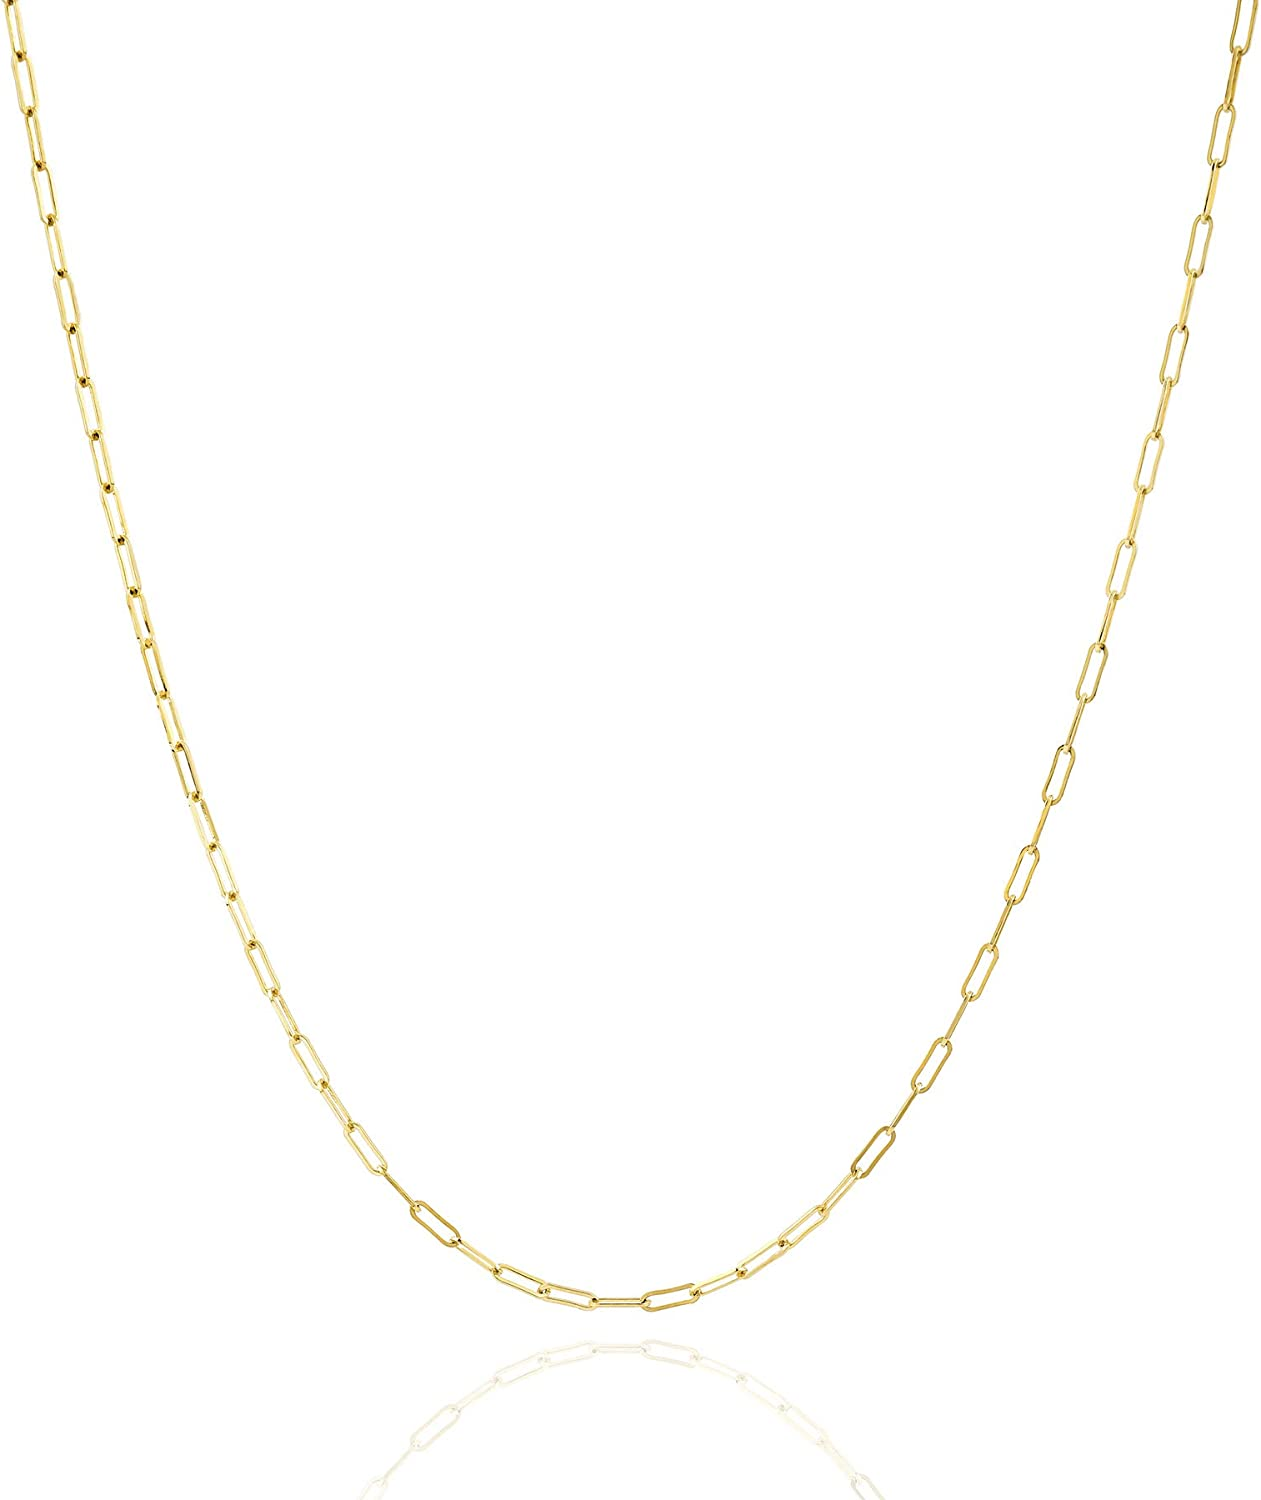 Jewelry Atelier Gold Chain Necklace Collection - 14K Solid Yellow Gold Filled Paper Clip Link Chain Necklaces for Women and Men with Different Sizes (2.0mm, 2.5mm)